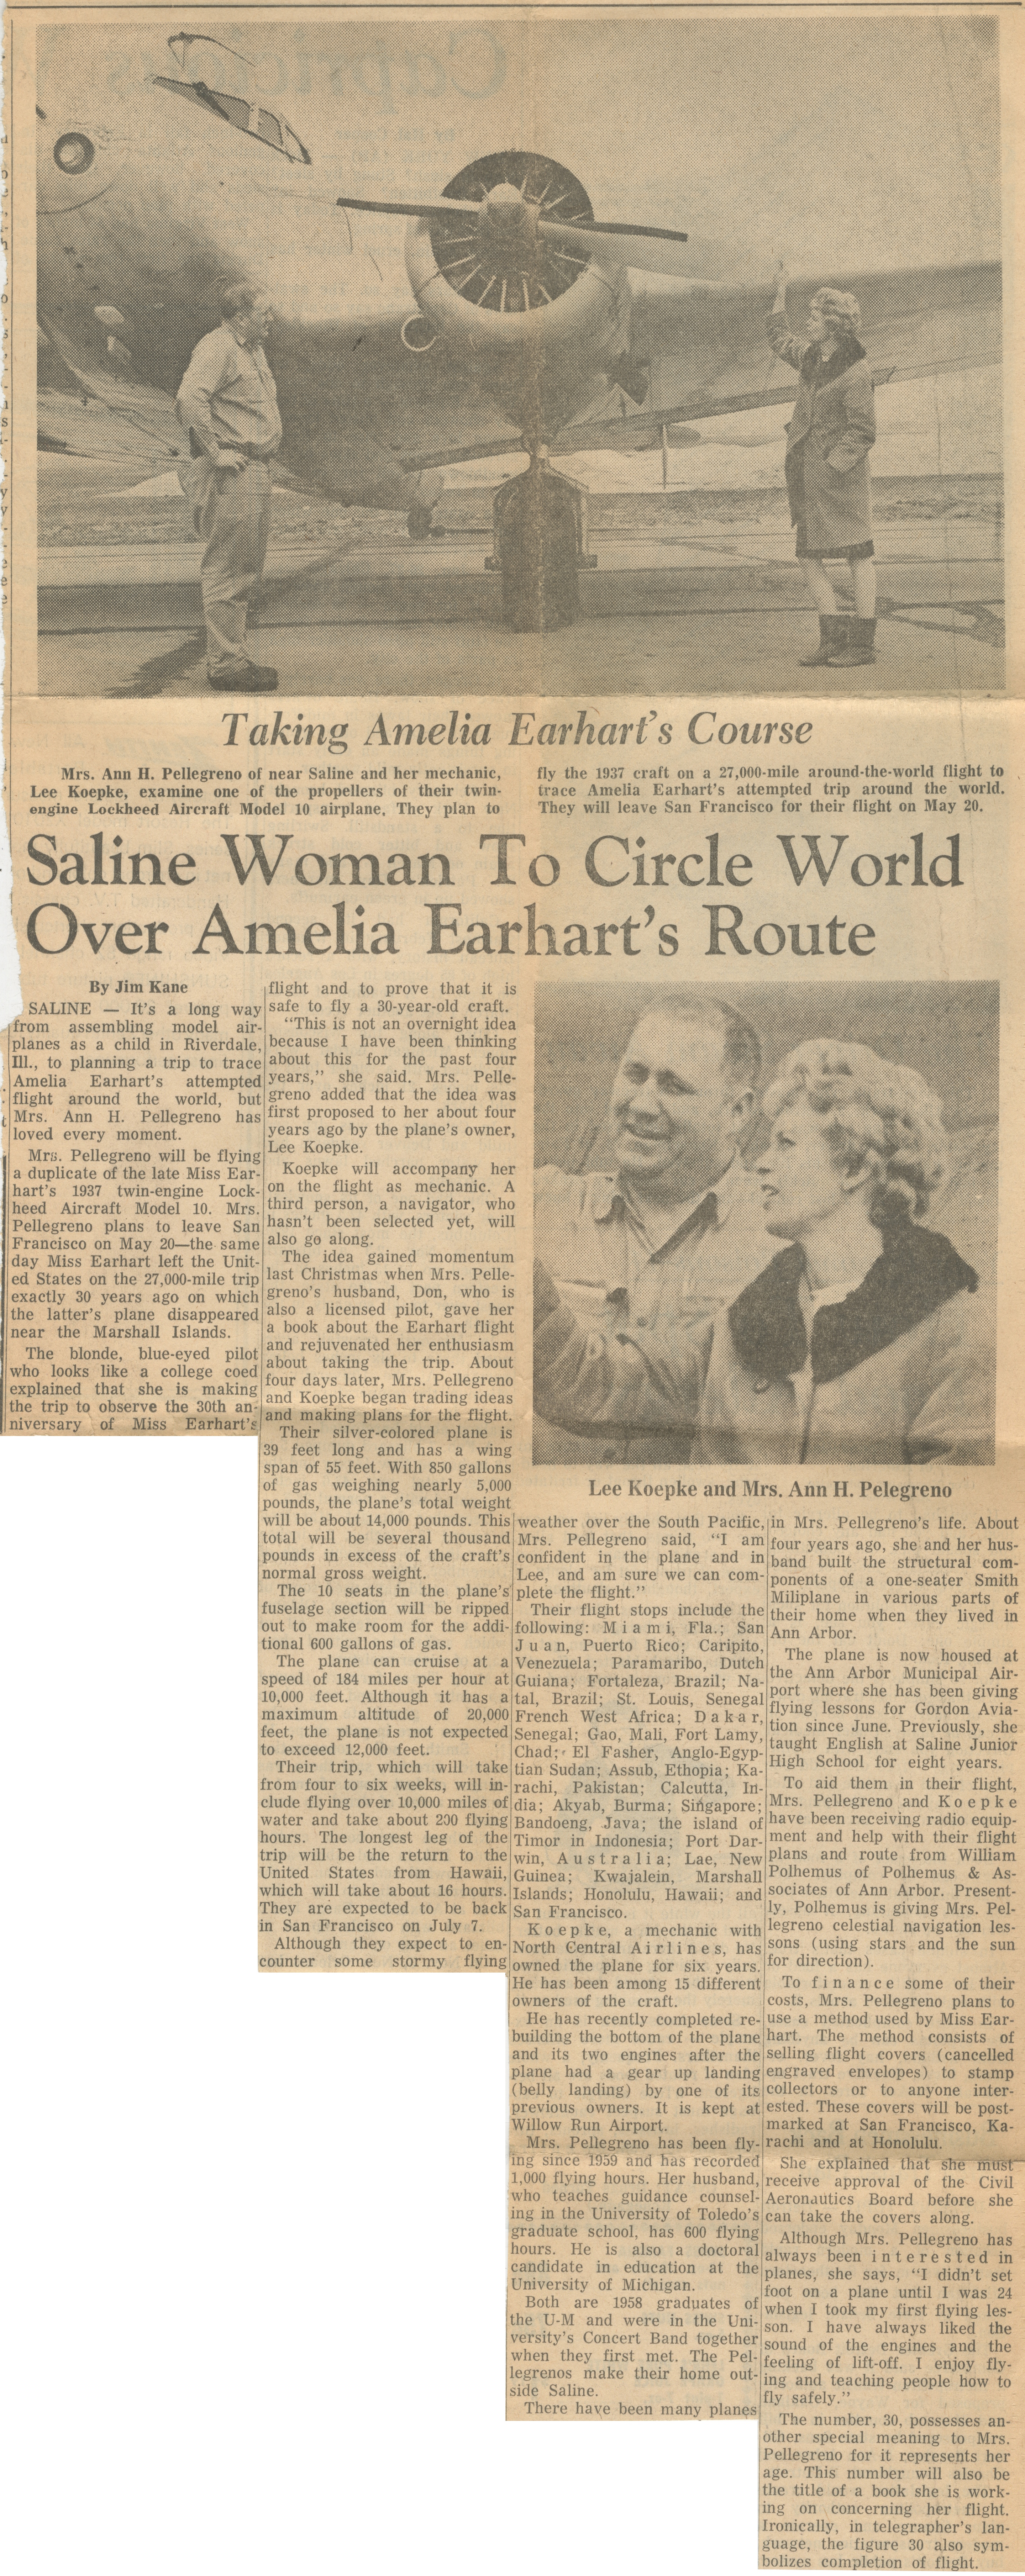 Saline Woman To Circle World Over Amelia Earhart's Route image